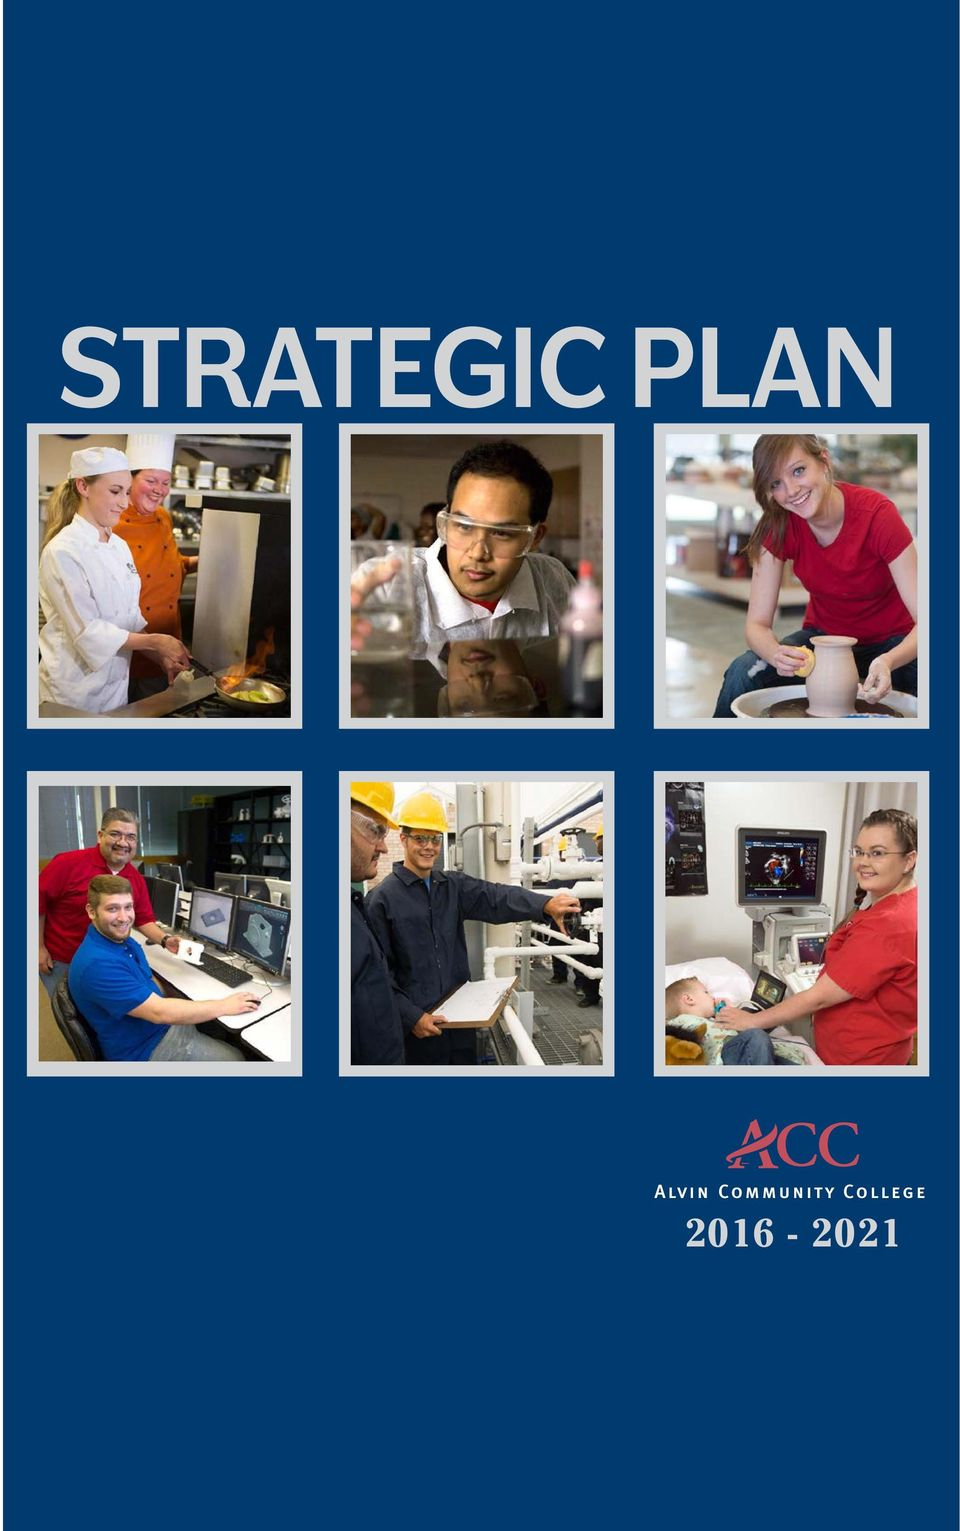 five year strategic plan move Not a binder on a shelf  joined us as we embarked on creating a five-year strategic plan for the  years as we move forward together on behalf of.